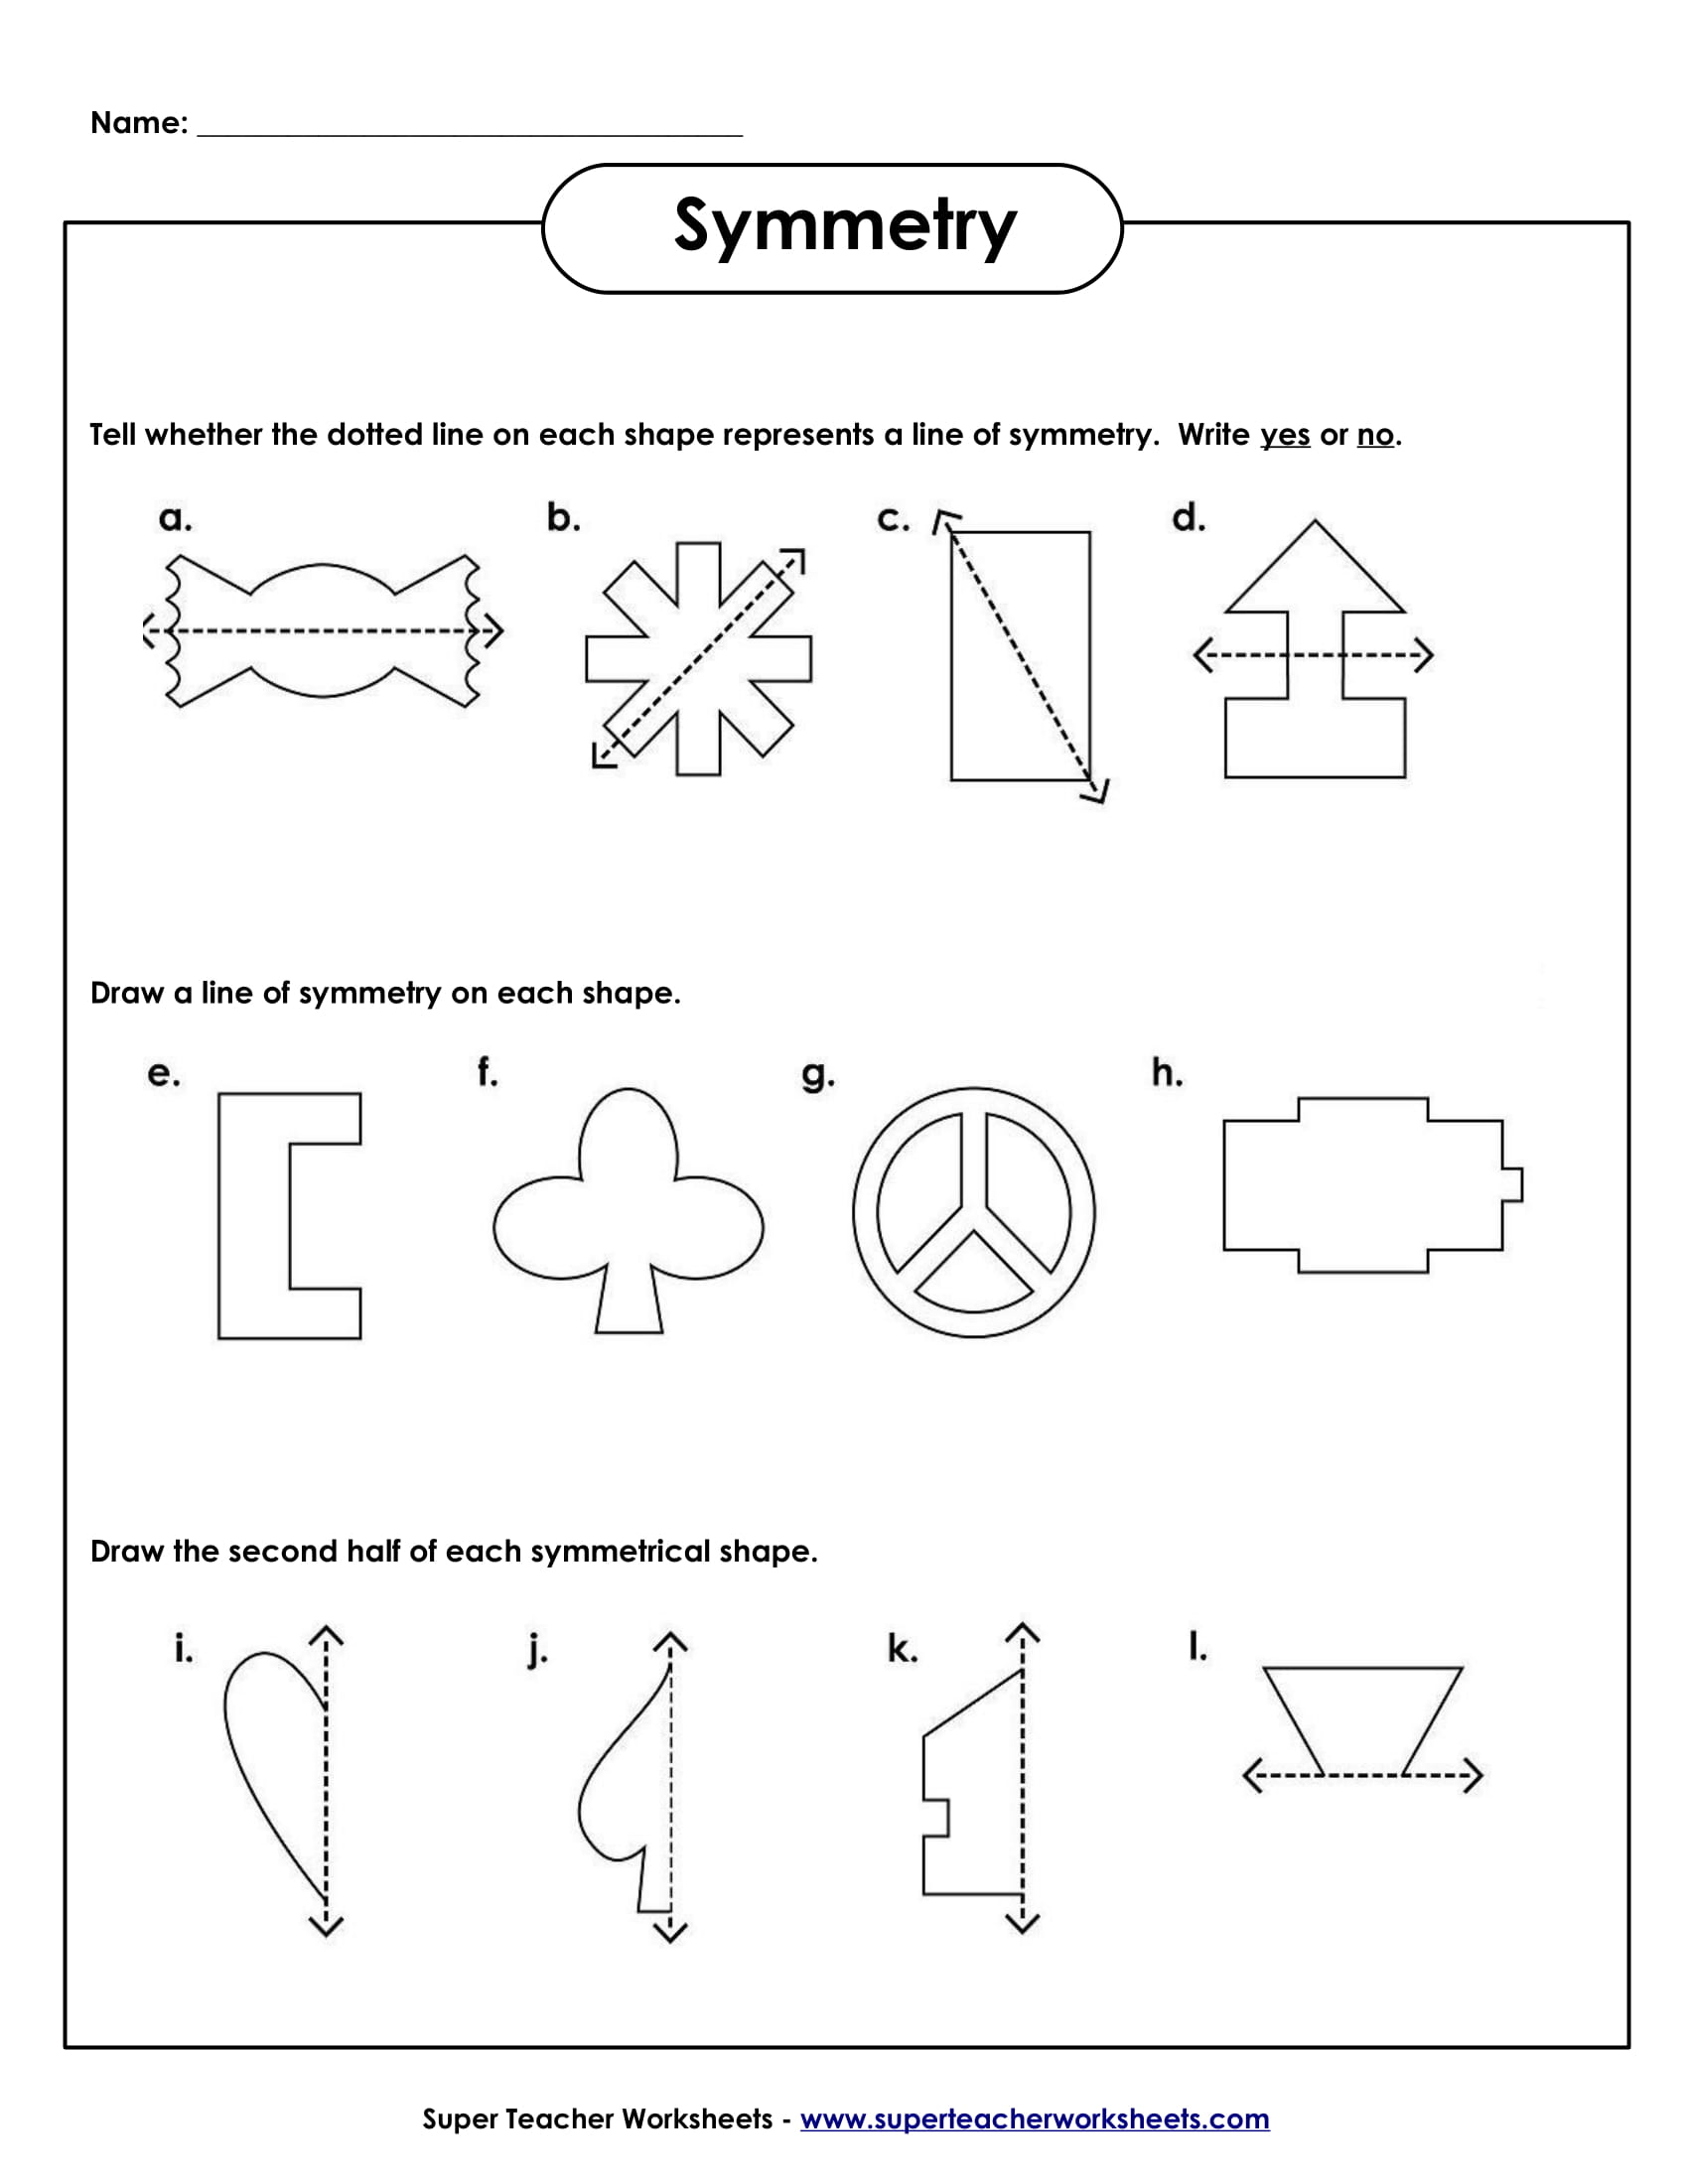 symmetry sample worksheet